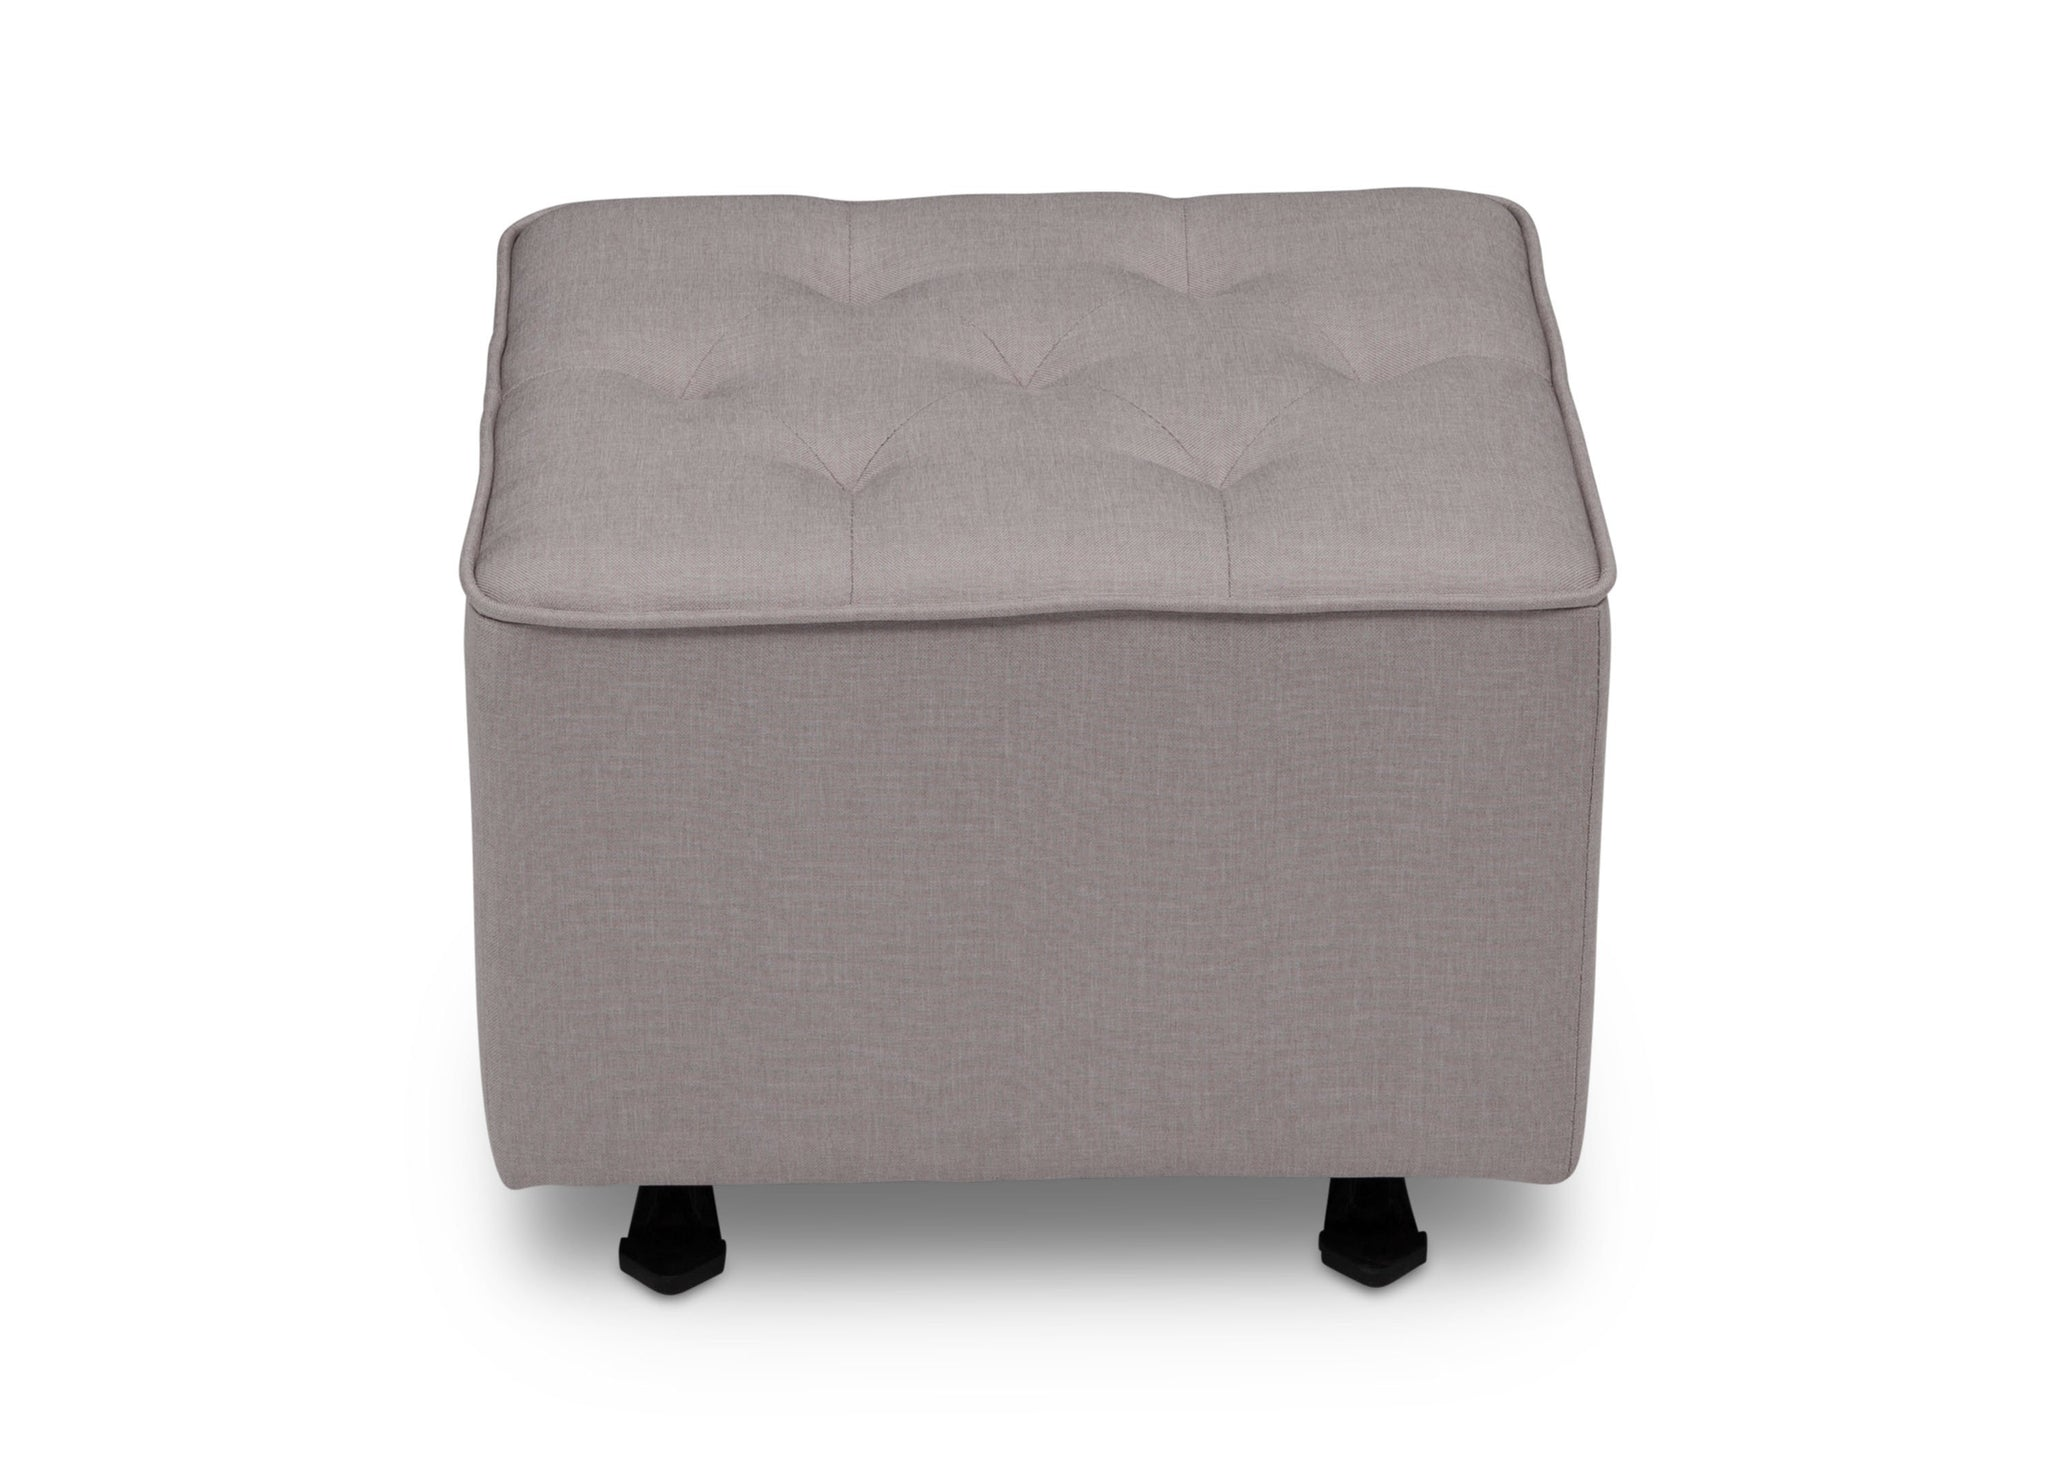 Delta Children French Grey (1304) Emma Diamond Tufted Nursery Gliding Ottoman, front view, d3d